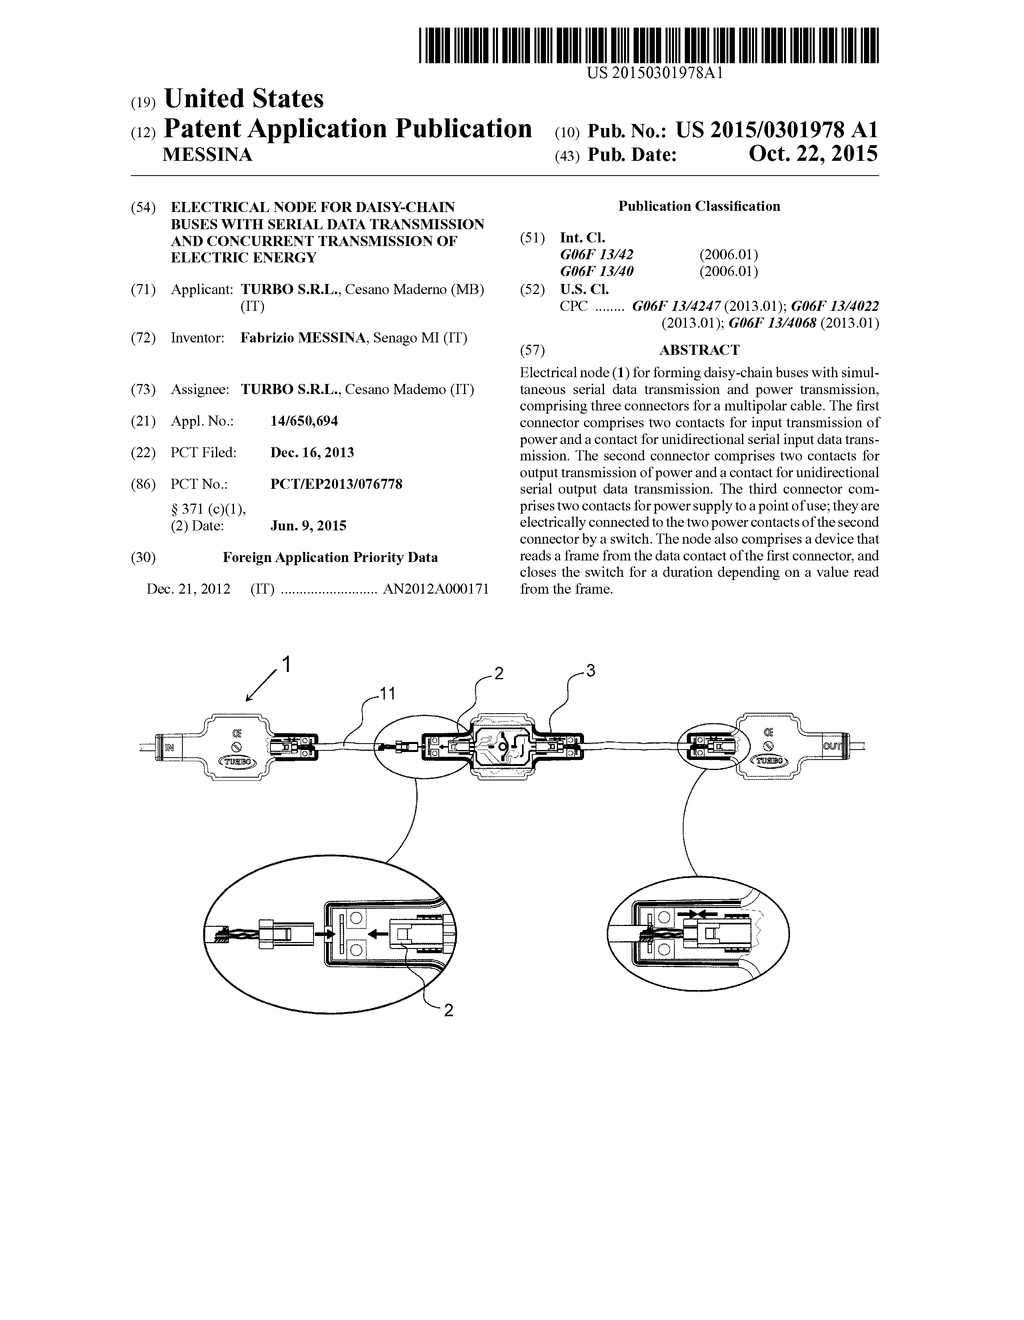 hight resolution of electrical node for daisy chain buses with serial data transmission and concurrent transmission of electric energy diagram schematic and image 01